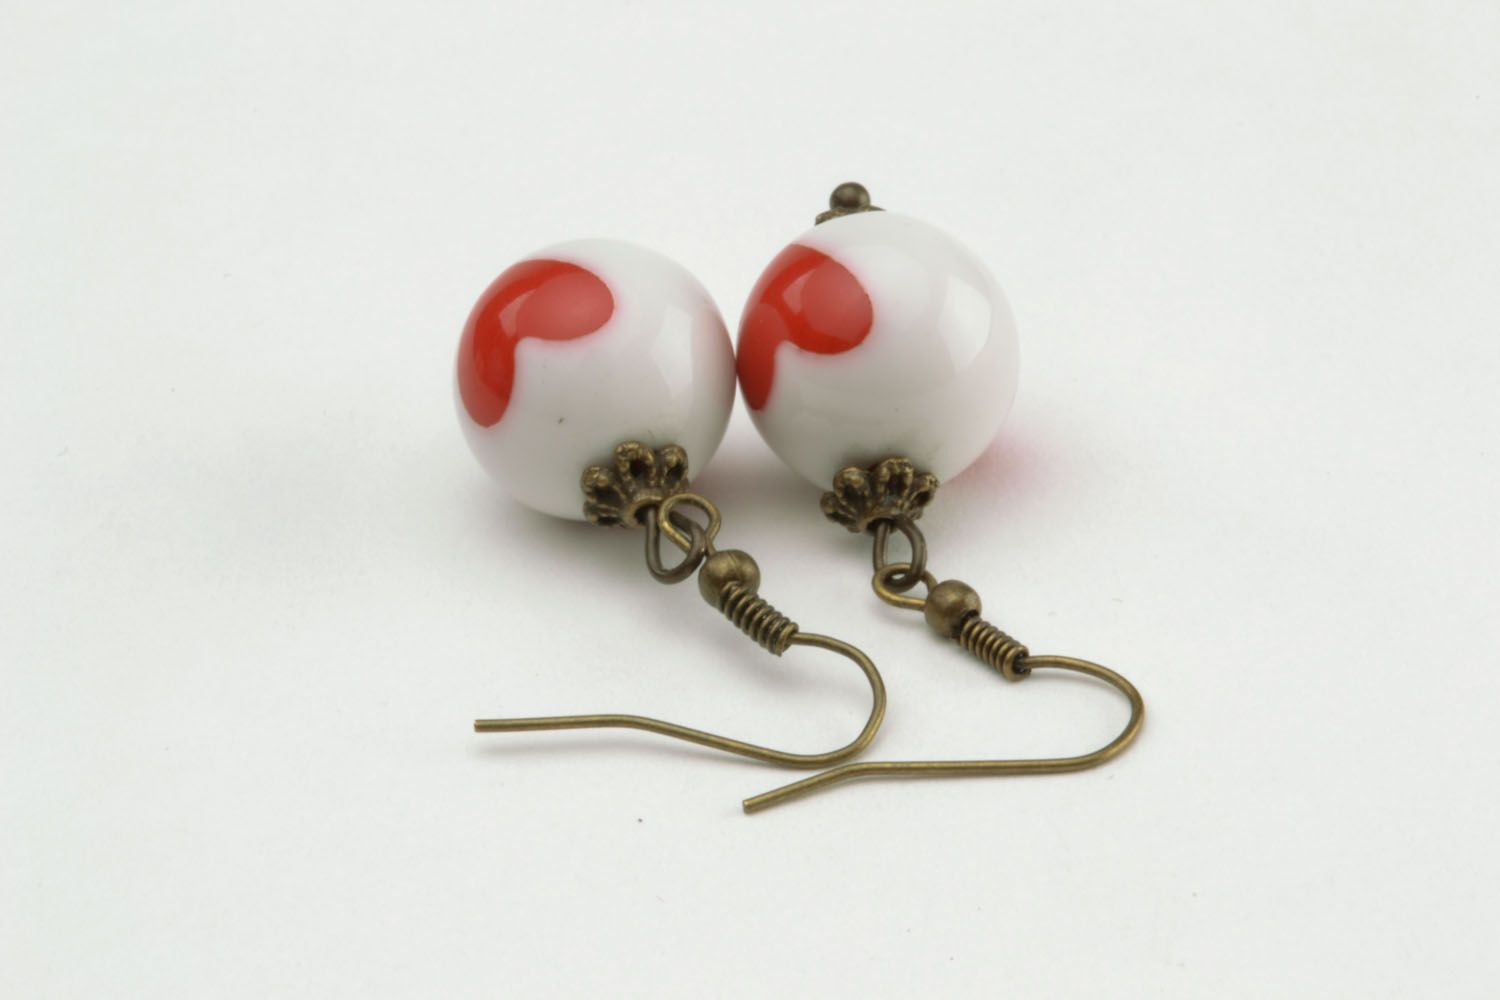 Dangle earrings made of polymer clay photo 5